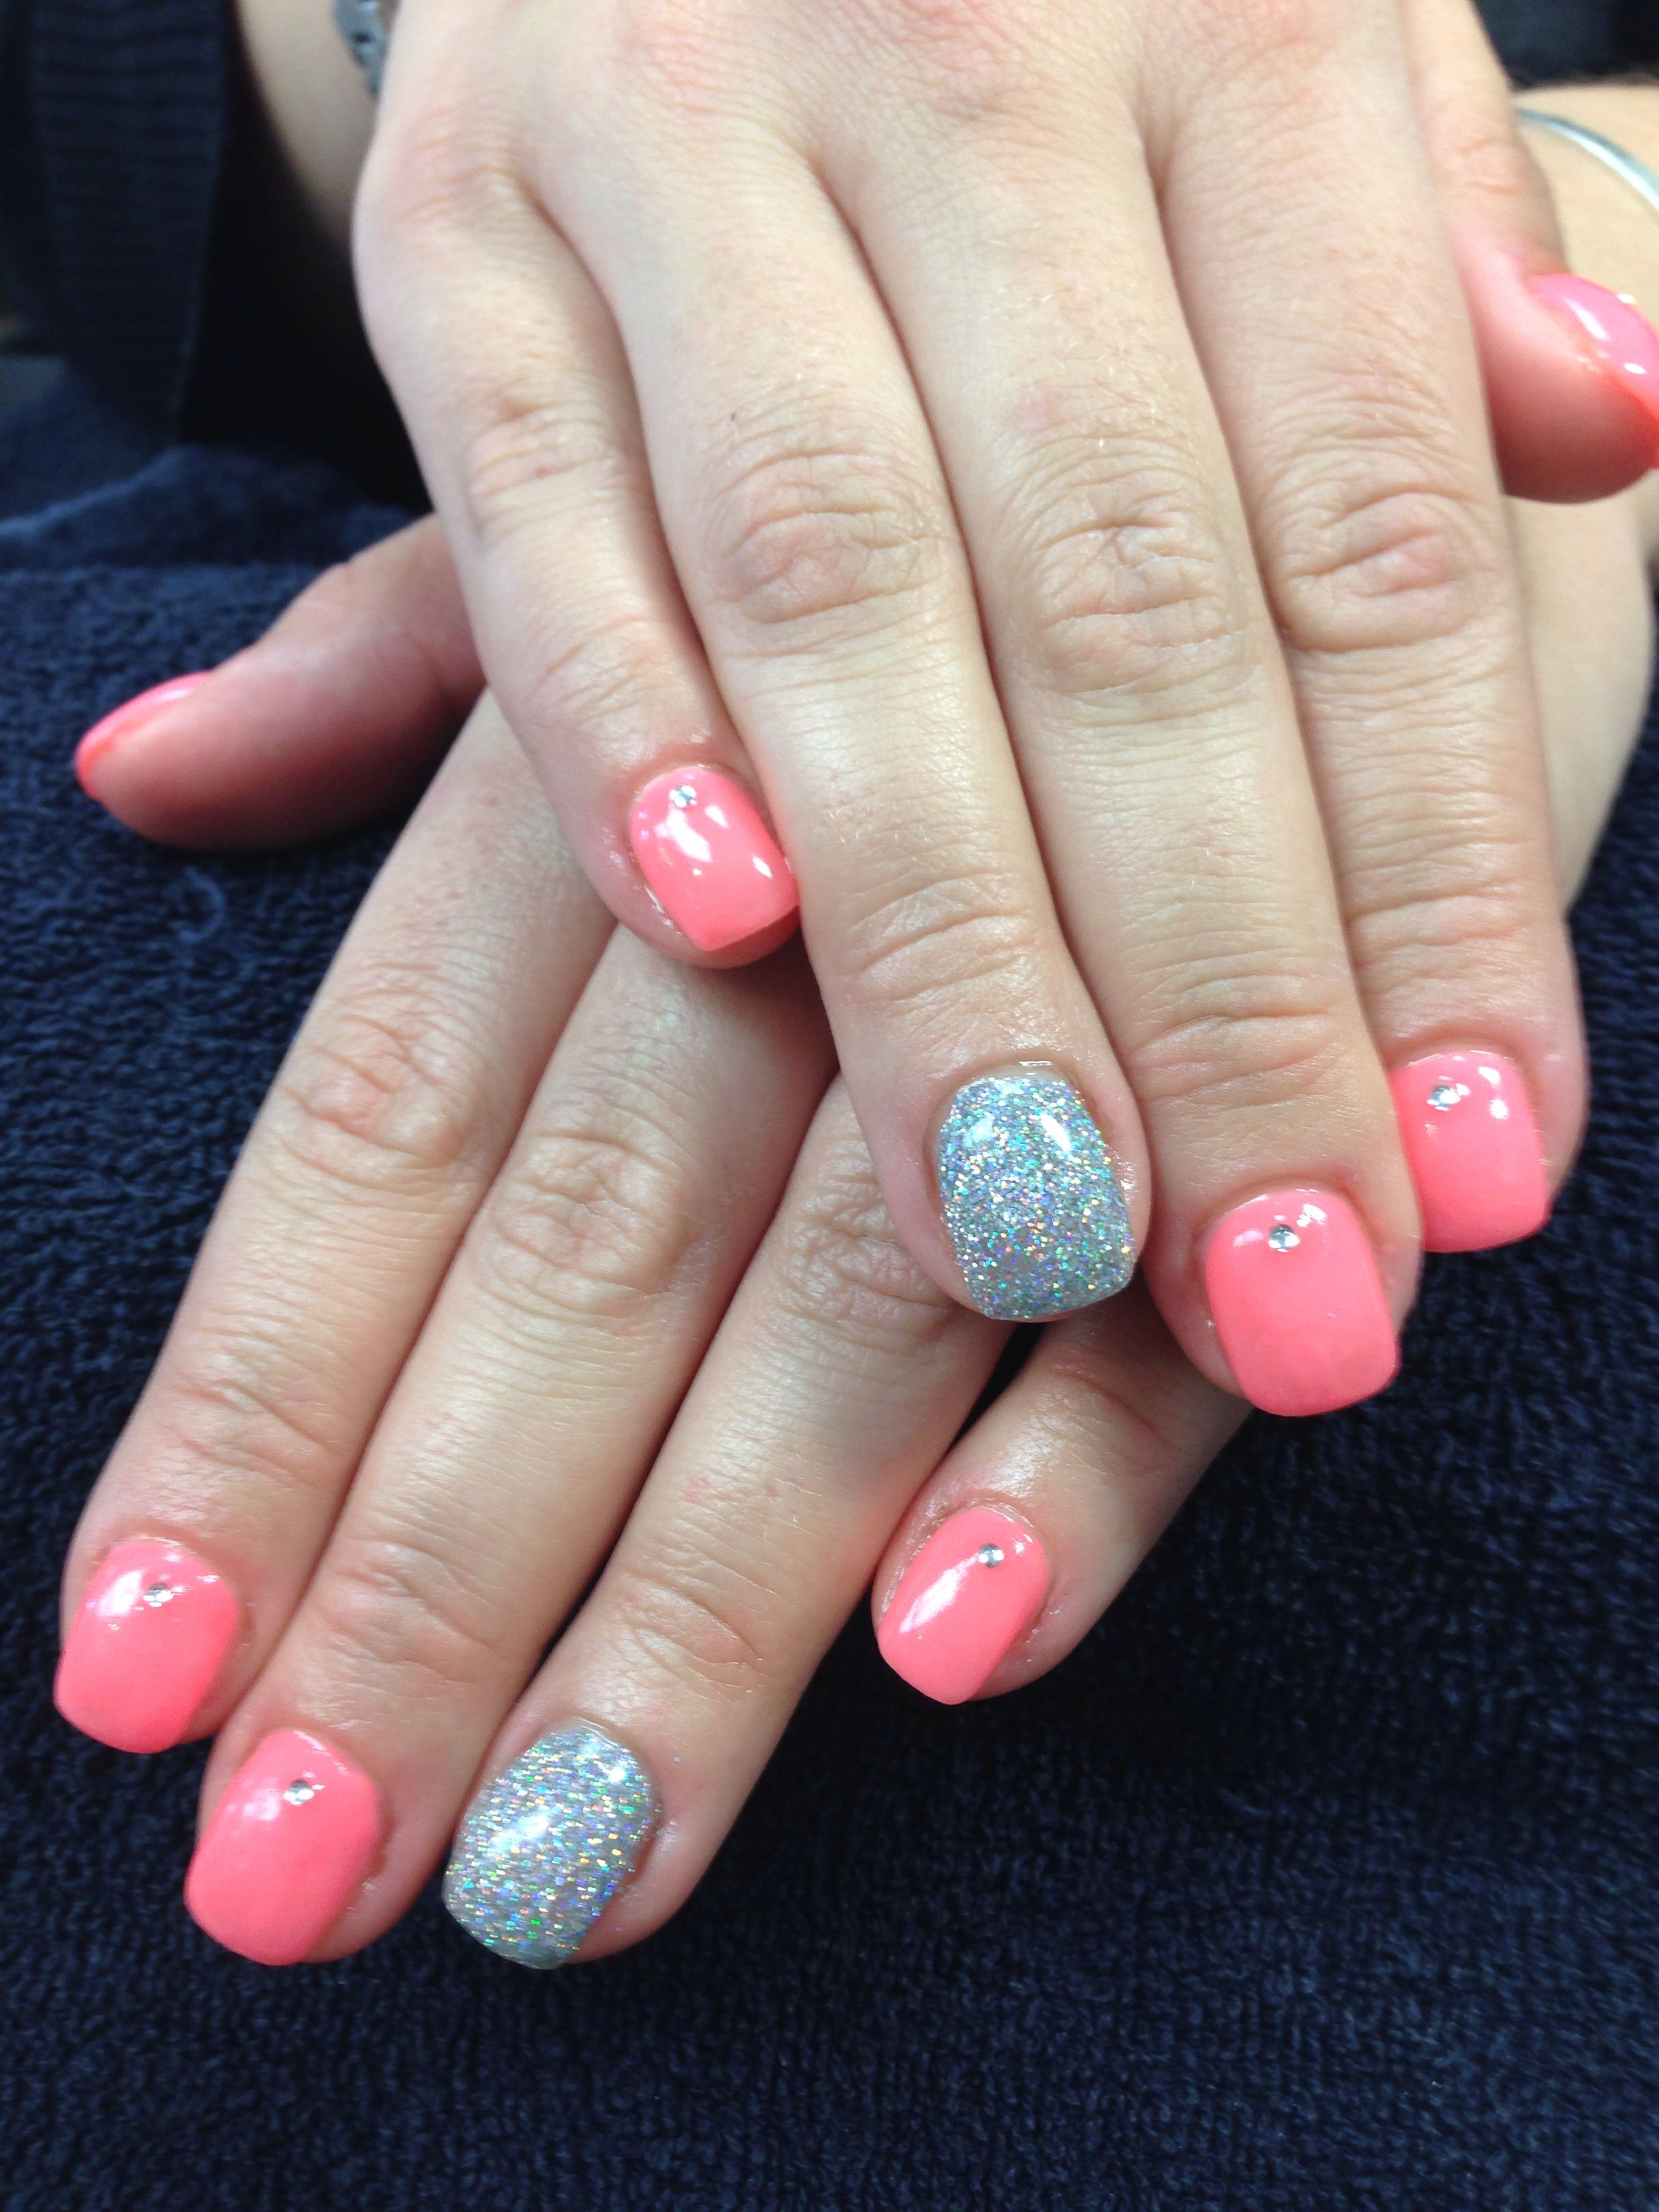 Kaitlin S Nails Sparkling Coral Gel Nail Art With Images Gel